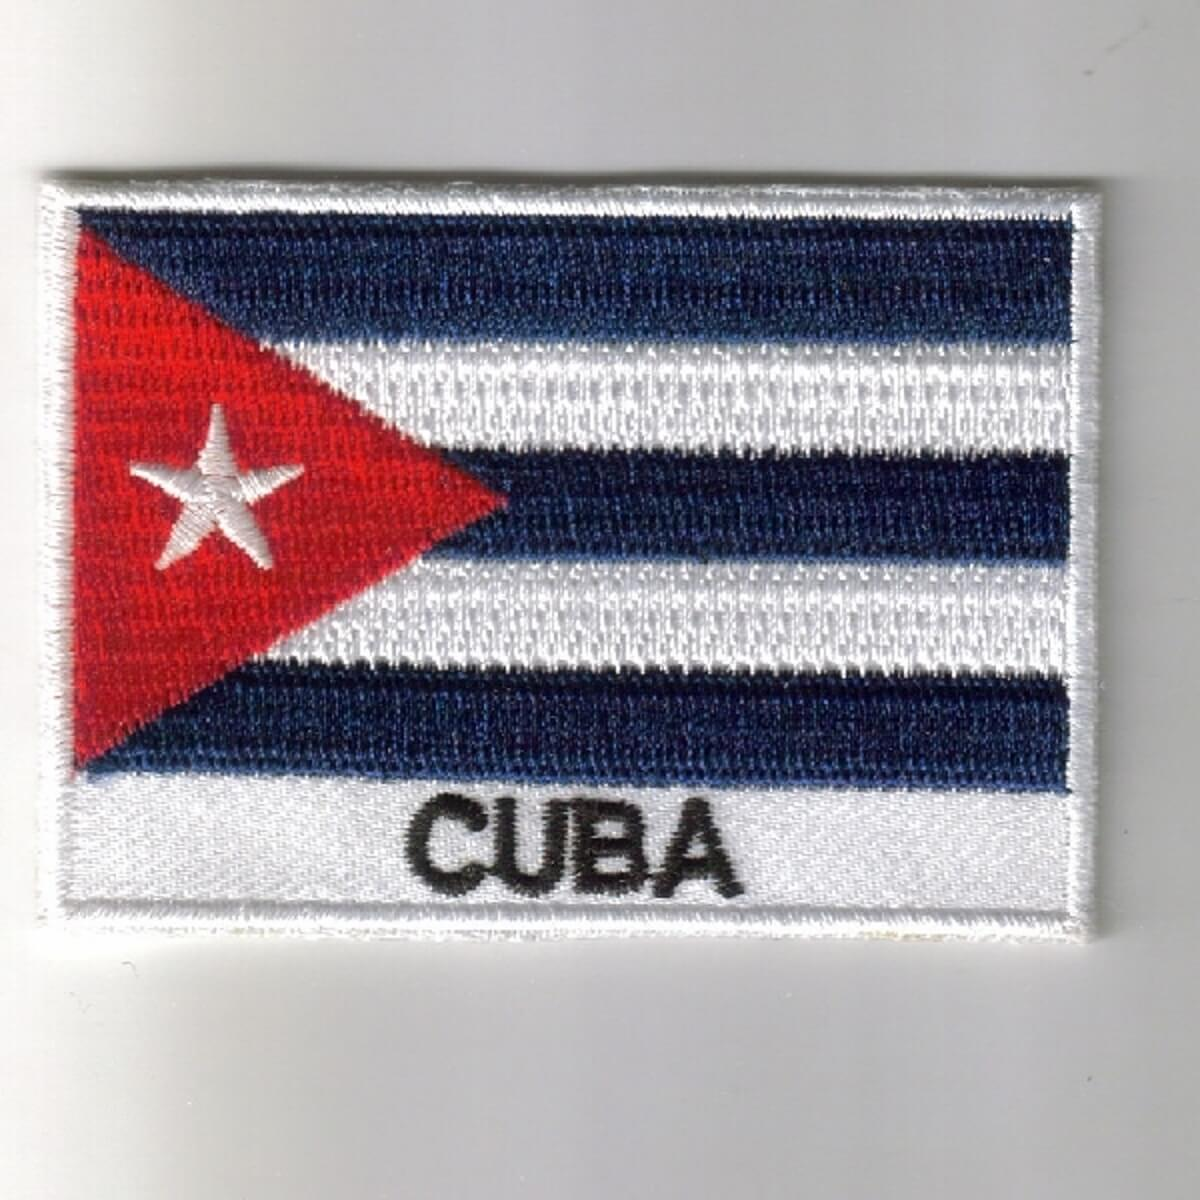 Cuba embroidered patches - country flag Cuba patches / iron on badges